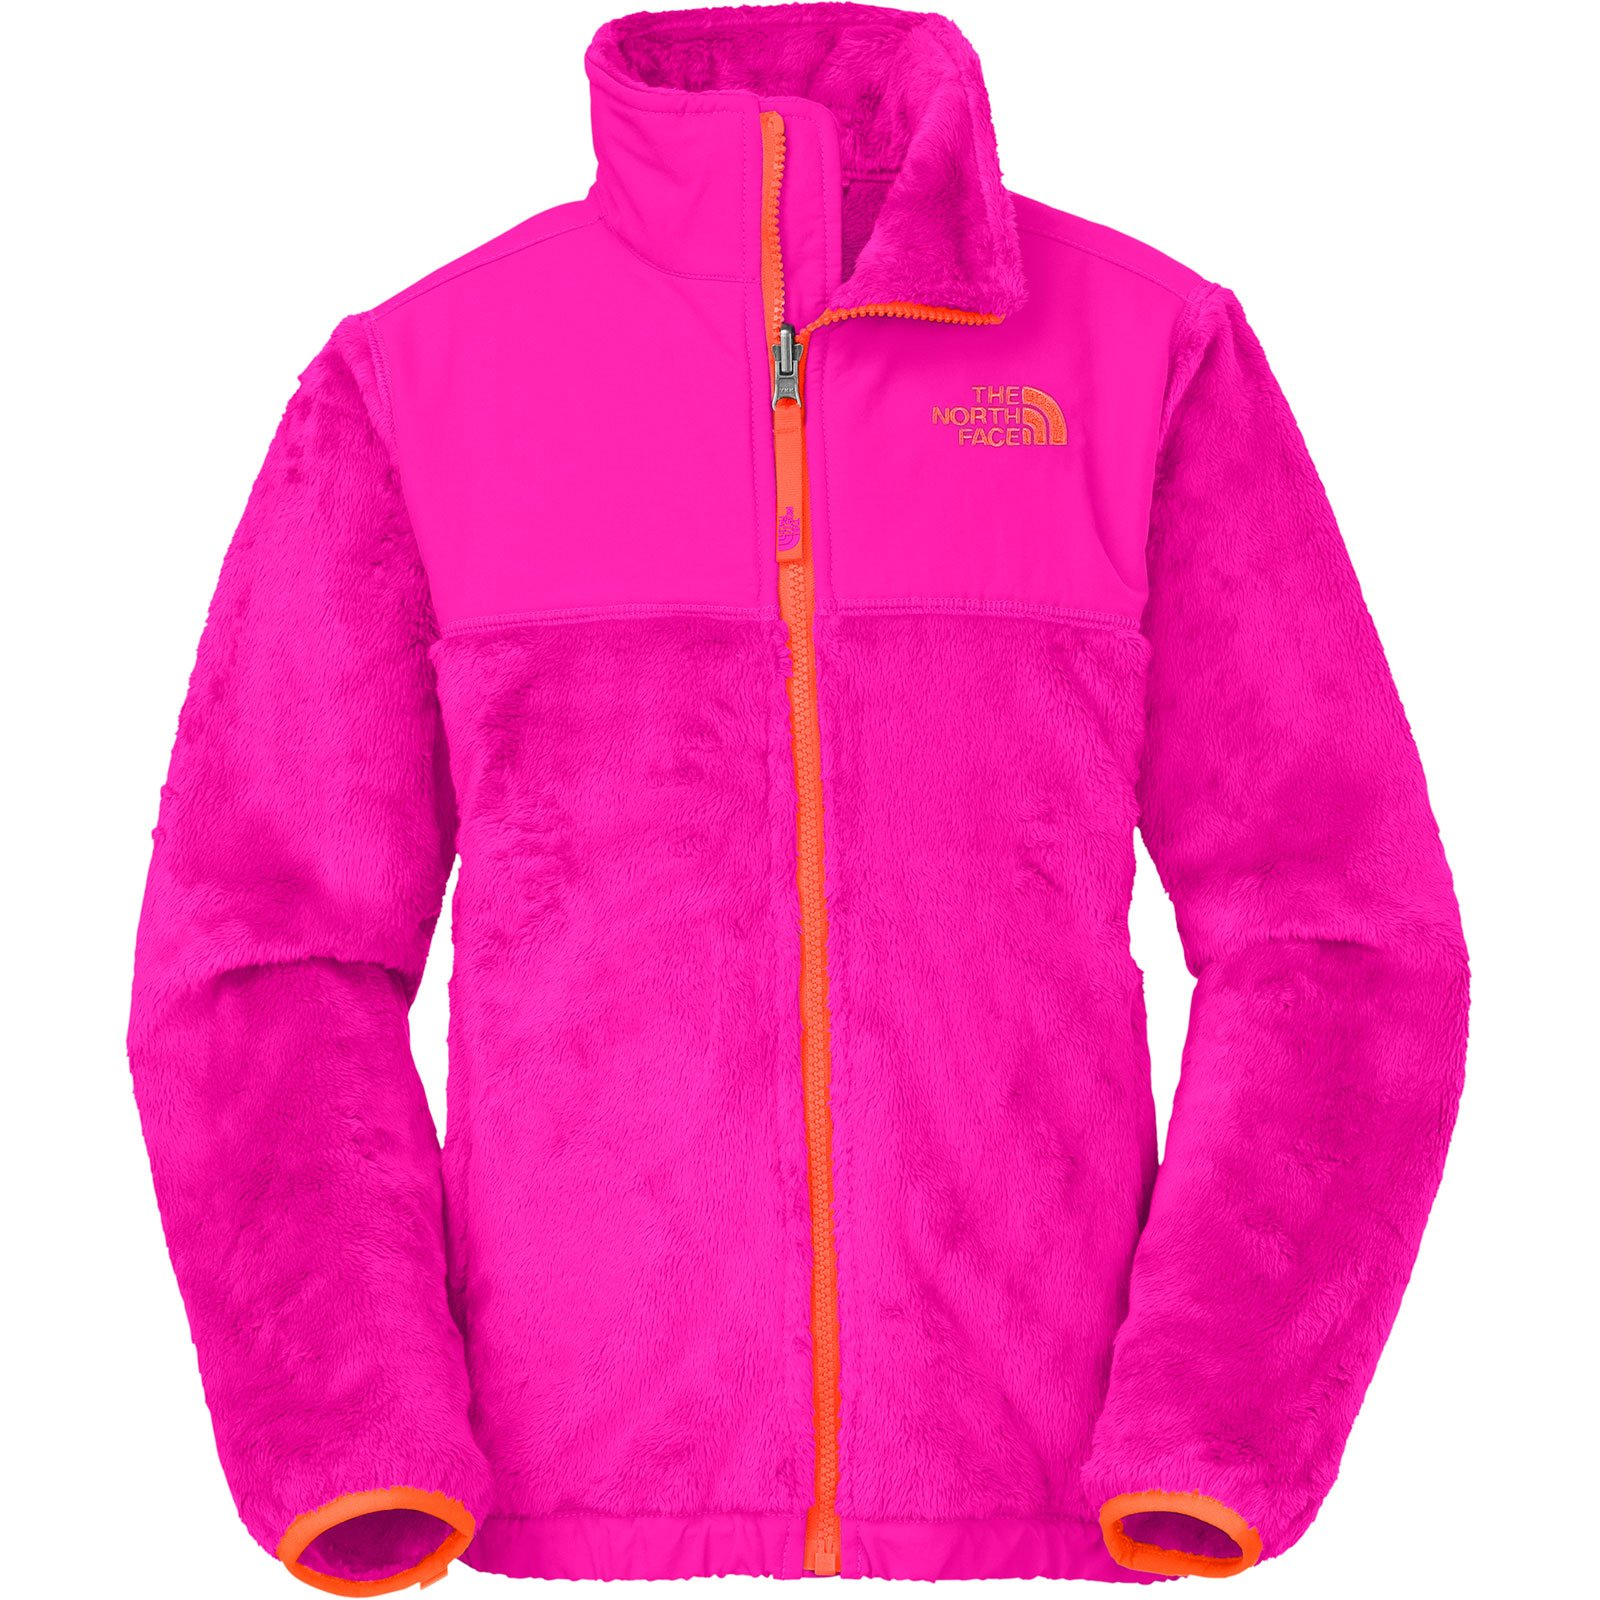 The North Face Denali Thermal Jacket Girls Luminous Pink XL18 by The North Face